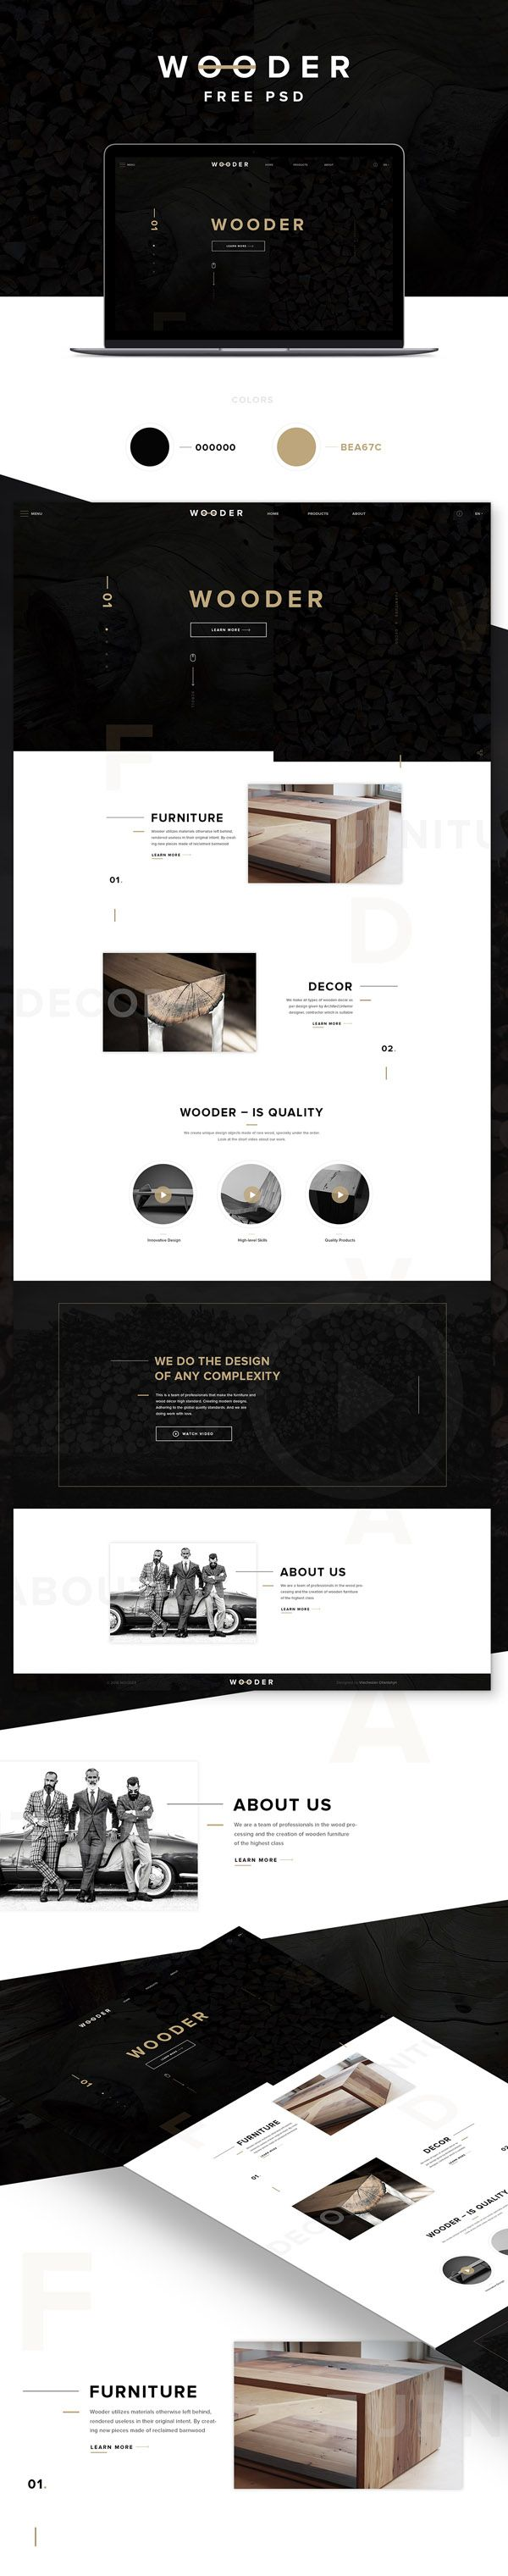 best  furniture websites ideas only on pinterest  web design  - wooder is free one page psd template that designed for furniture websitethe design is